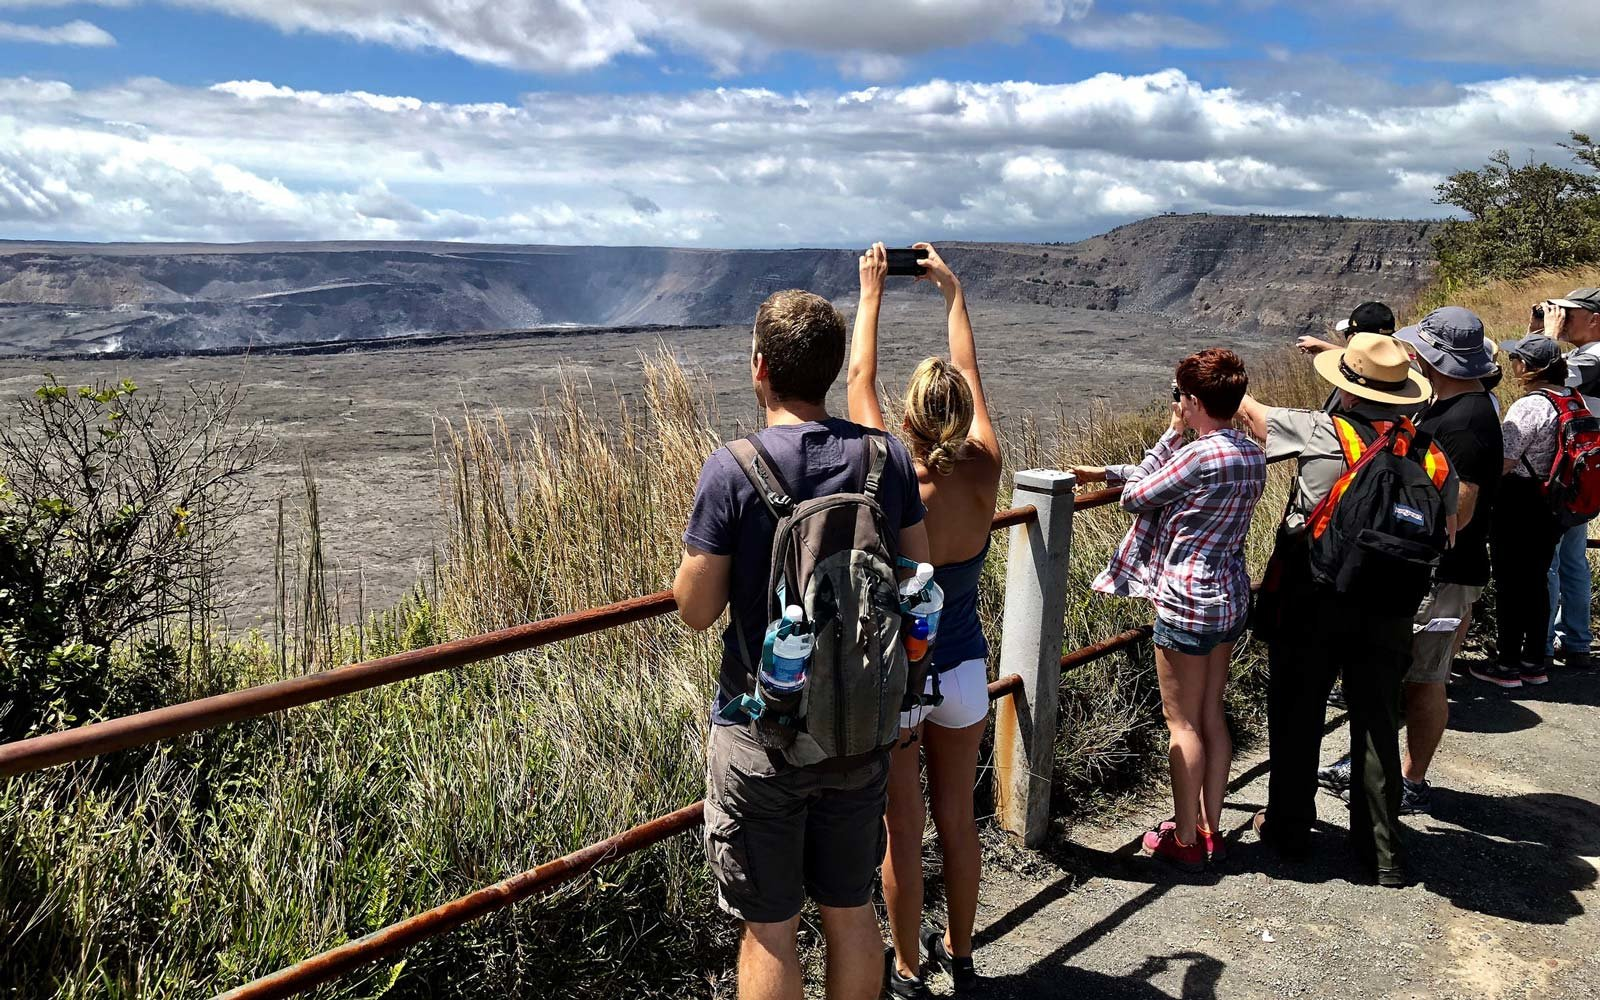 Steaming Bluff offers excellent views of Kīlauea Caldera and the changes at Halema'uma'u Crater.